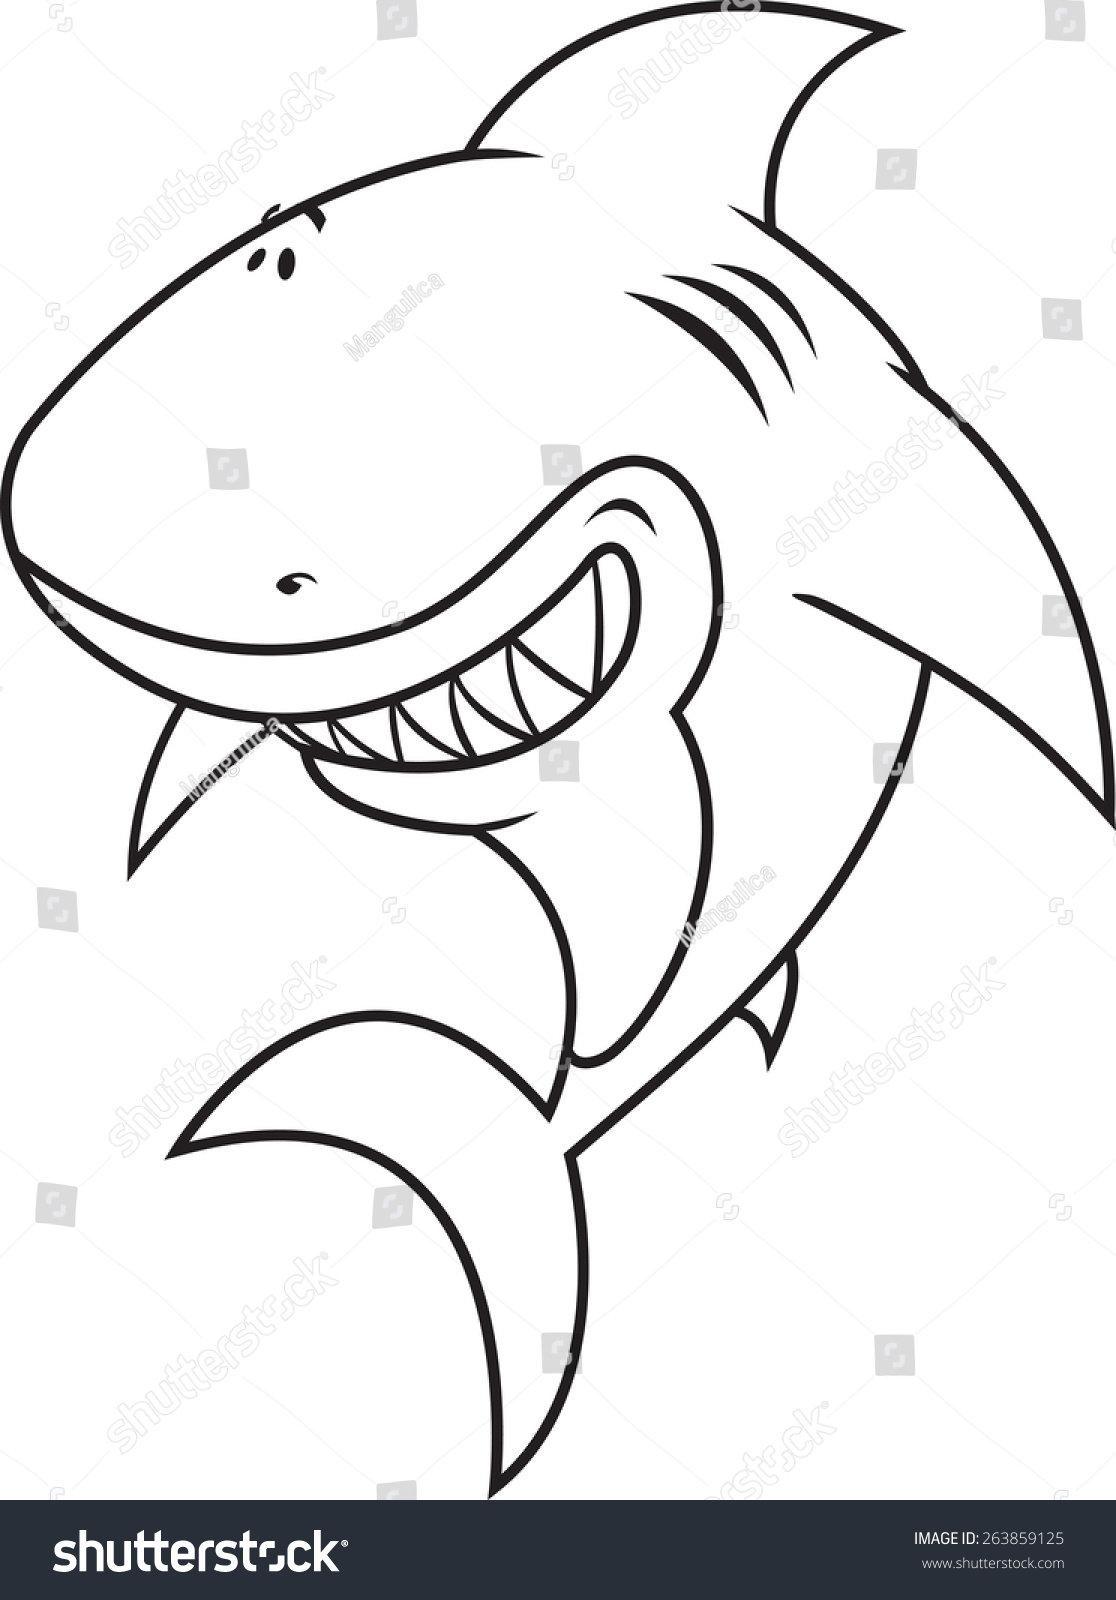 funny looking great white shark coloring book illustration - Shark Coloring Book